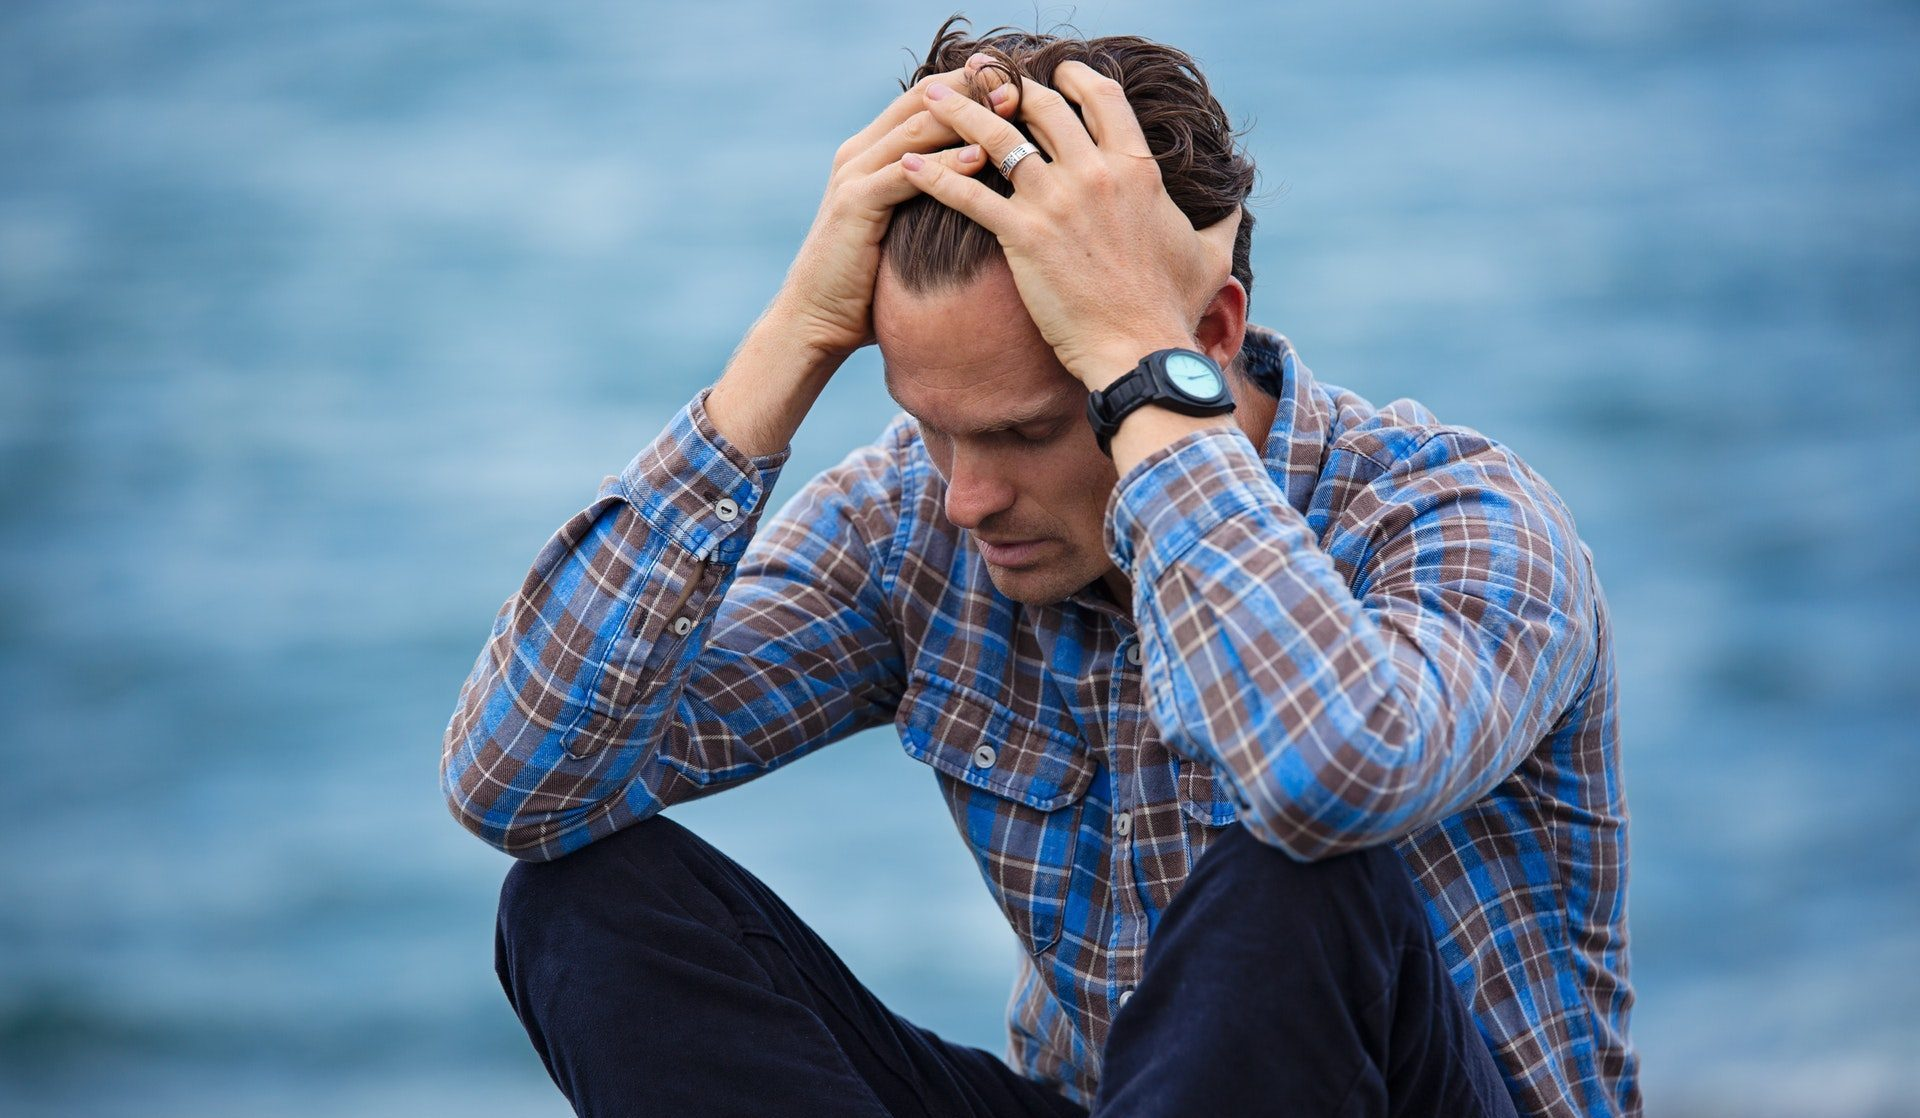 post holiday blues Man in Blue Environment Looking Distressed